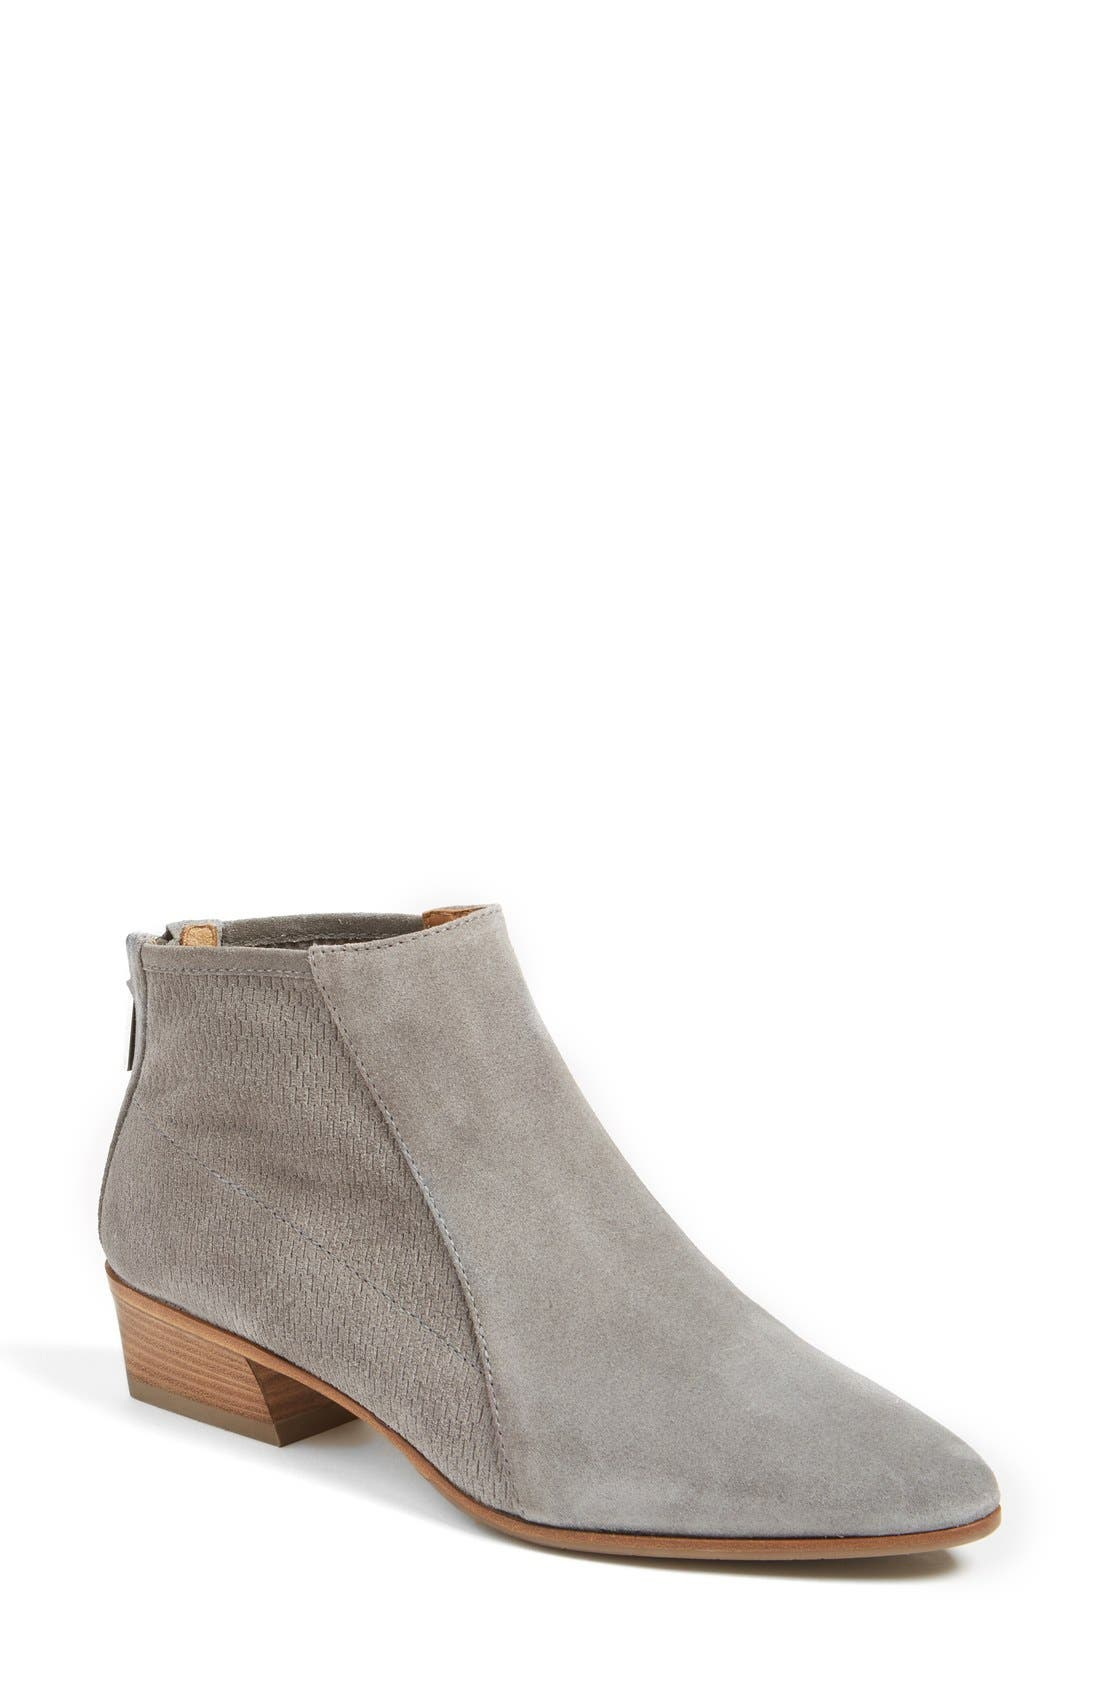 Fianna Perforated Bootie,                             Main thumbnail 1, color,